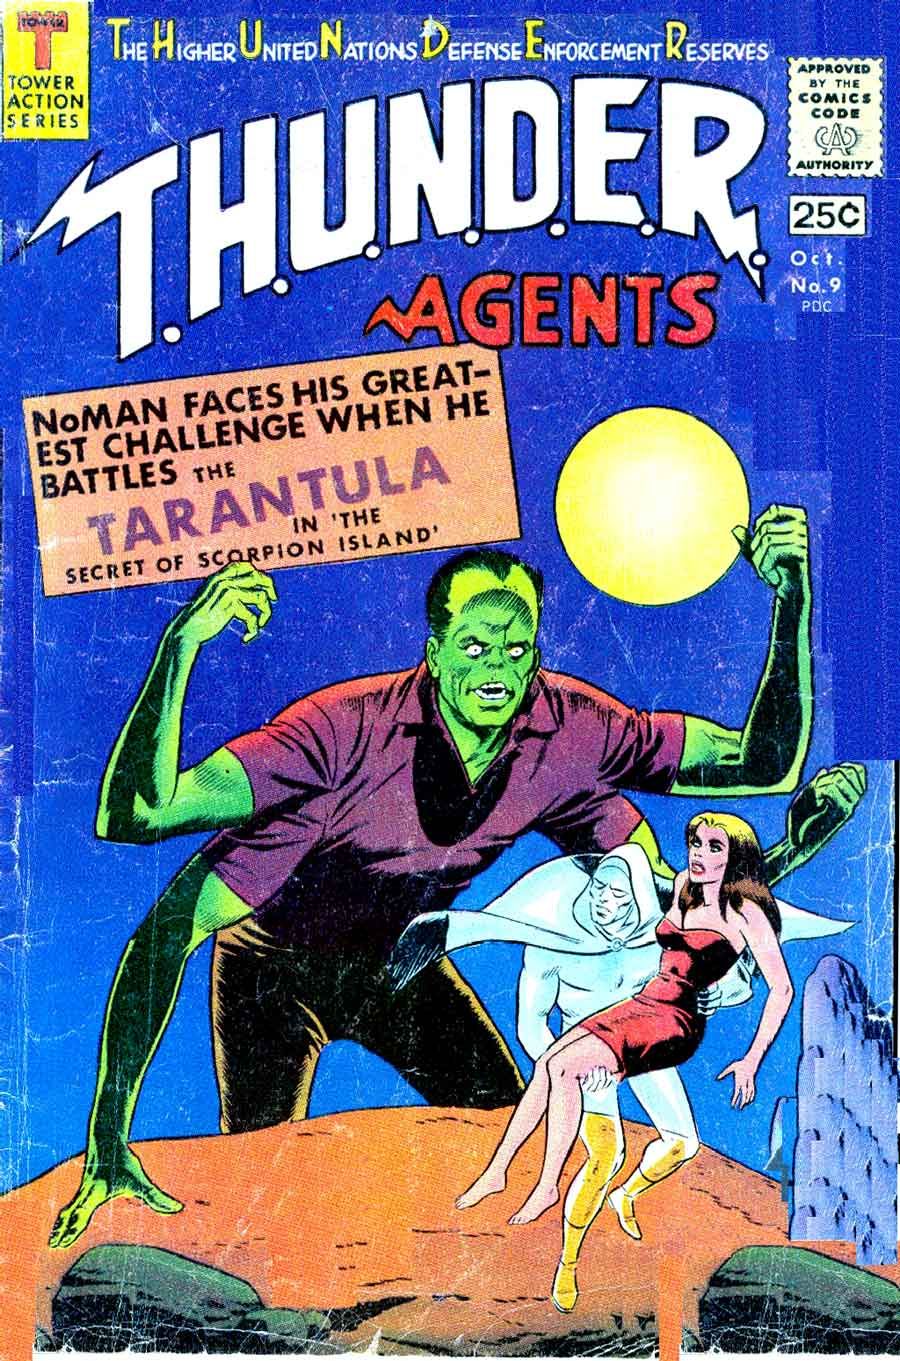 Thunder Agents v1 #9 tower silver age 1960s comic book cover art by Wally Wood